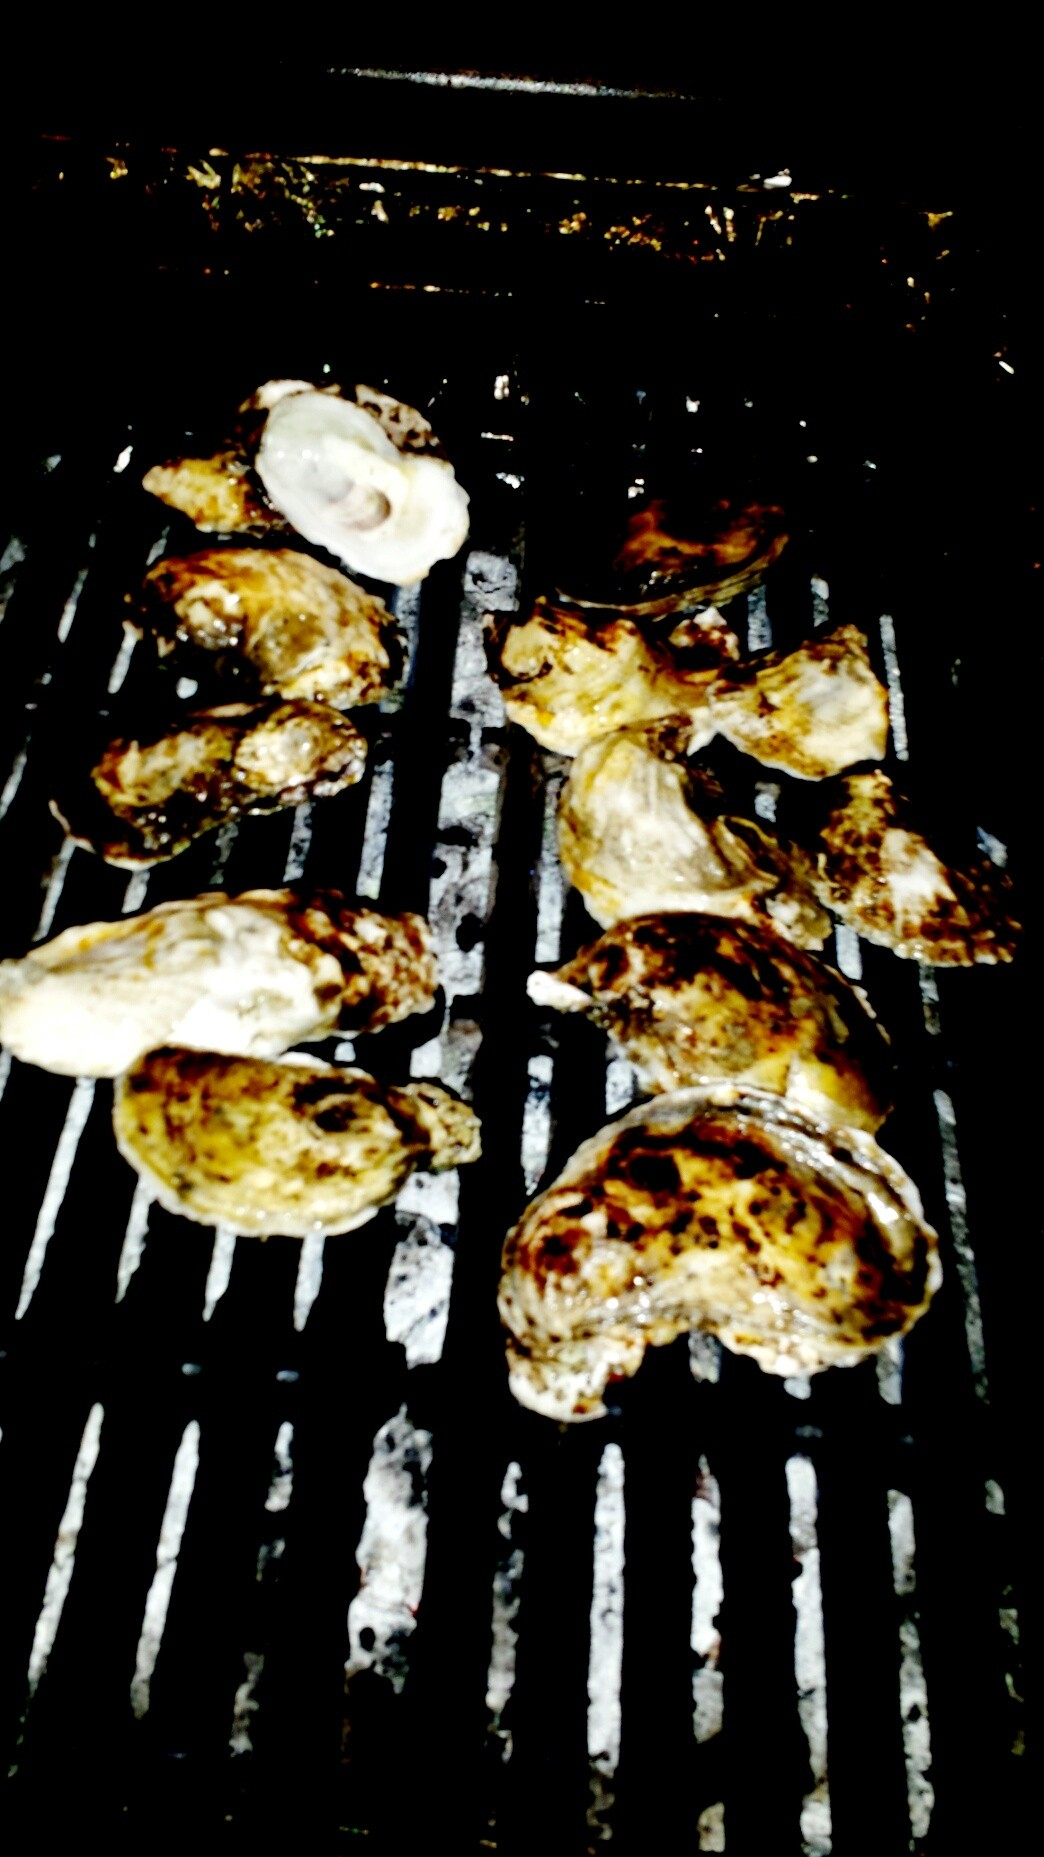 grill oysters